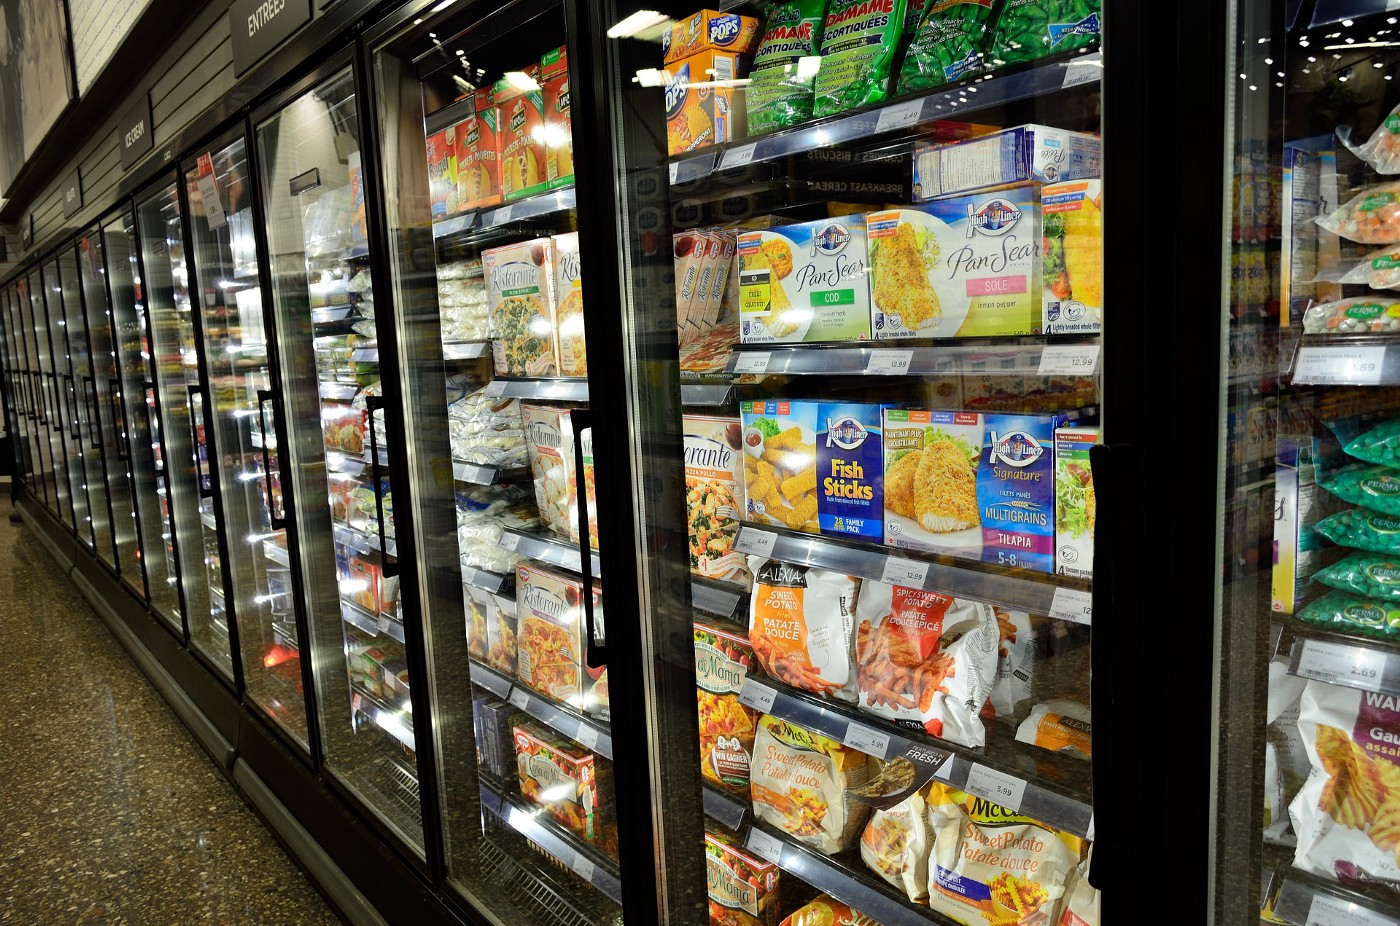 A row of freezers in the grocery store.